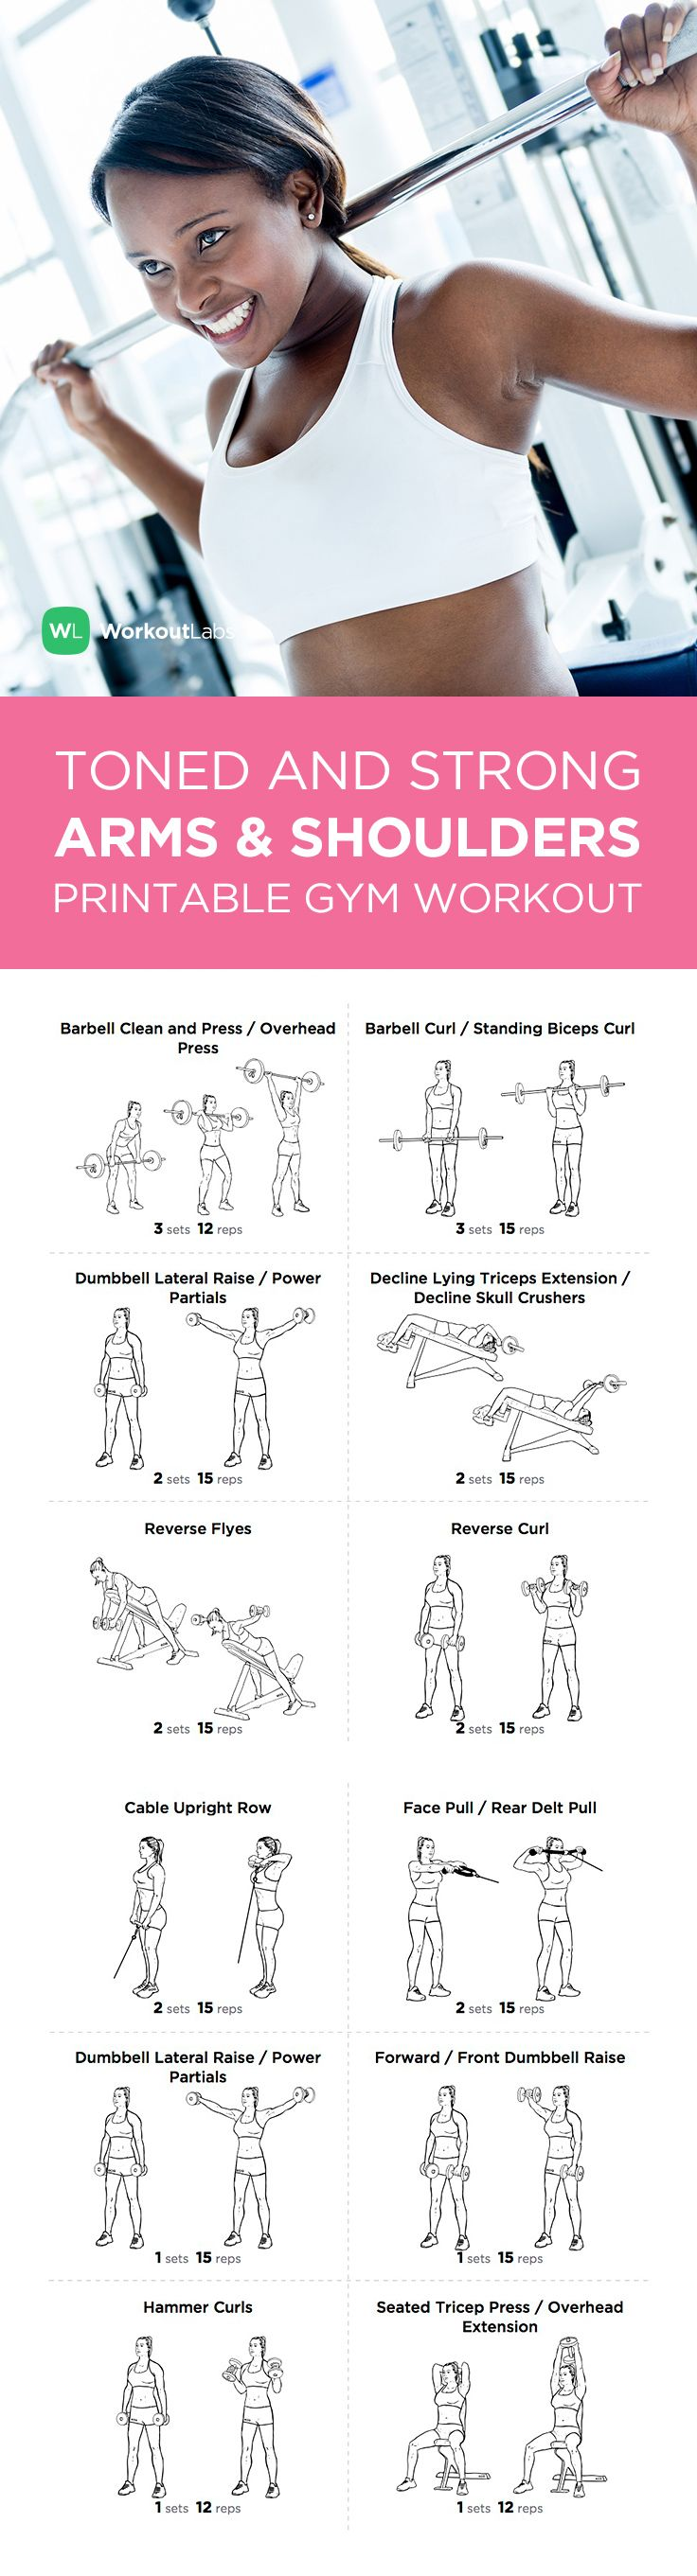 Pin by Kimberly Anne on A healthier me | Gym workouts for